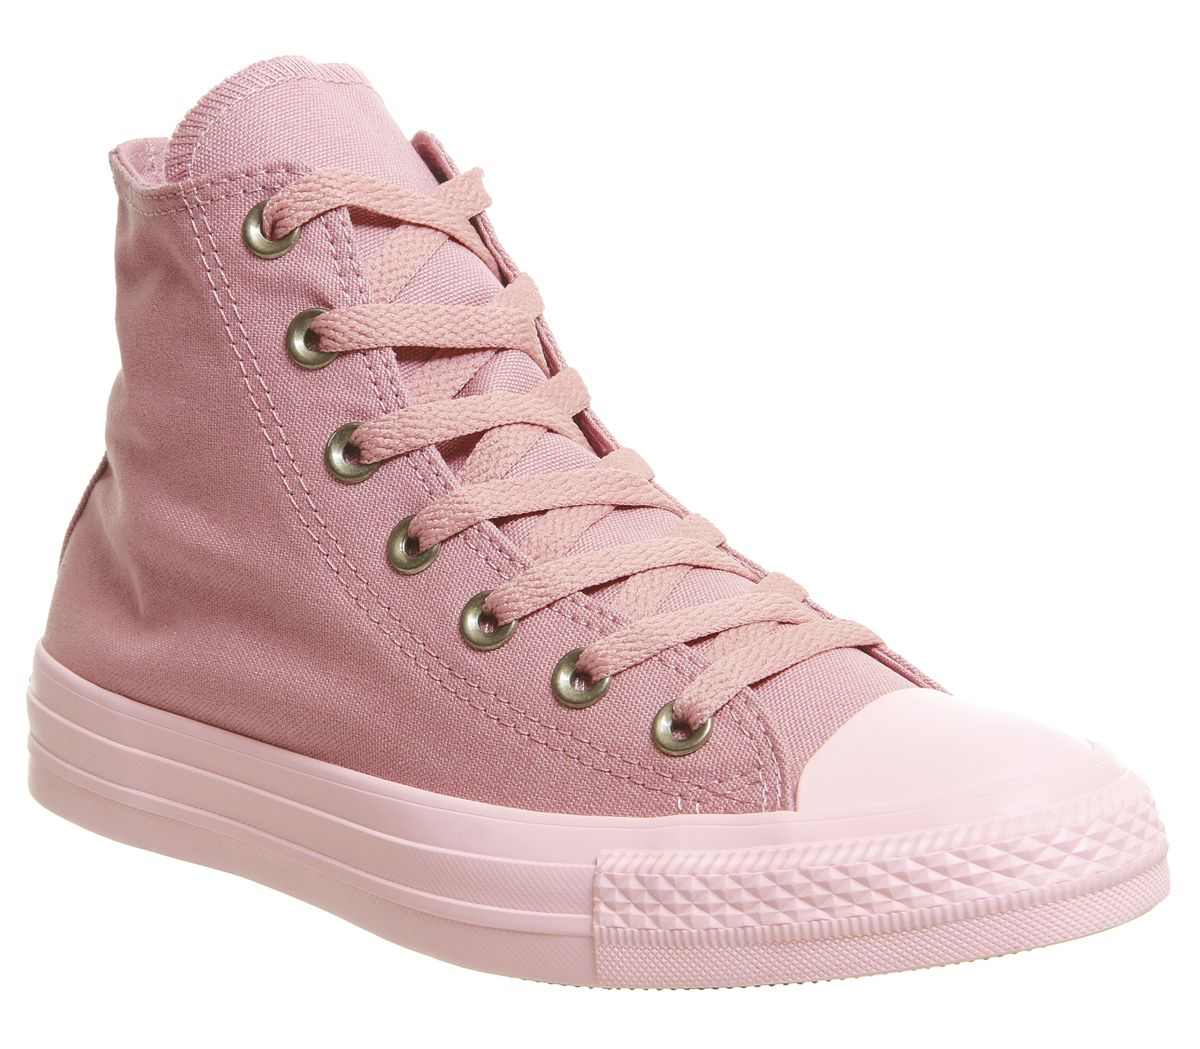 c2fa20b990dc Converse Converse All Star Hi Trainers Rust Pink - Hers trainers